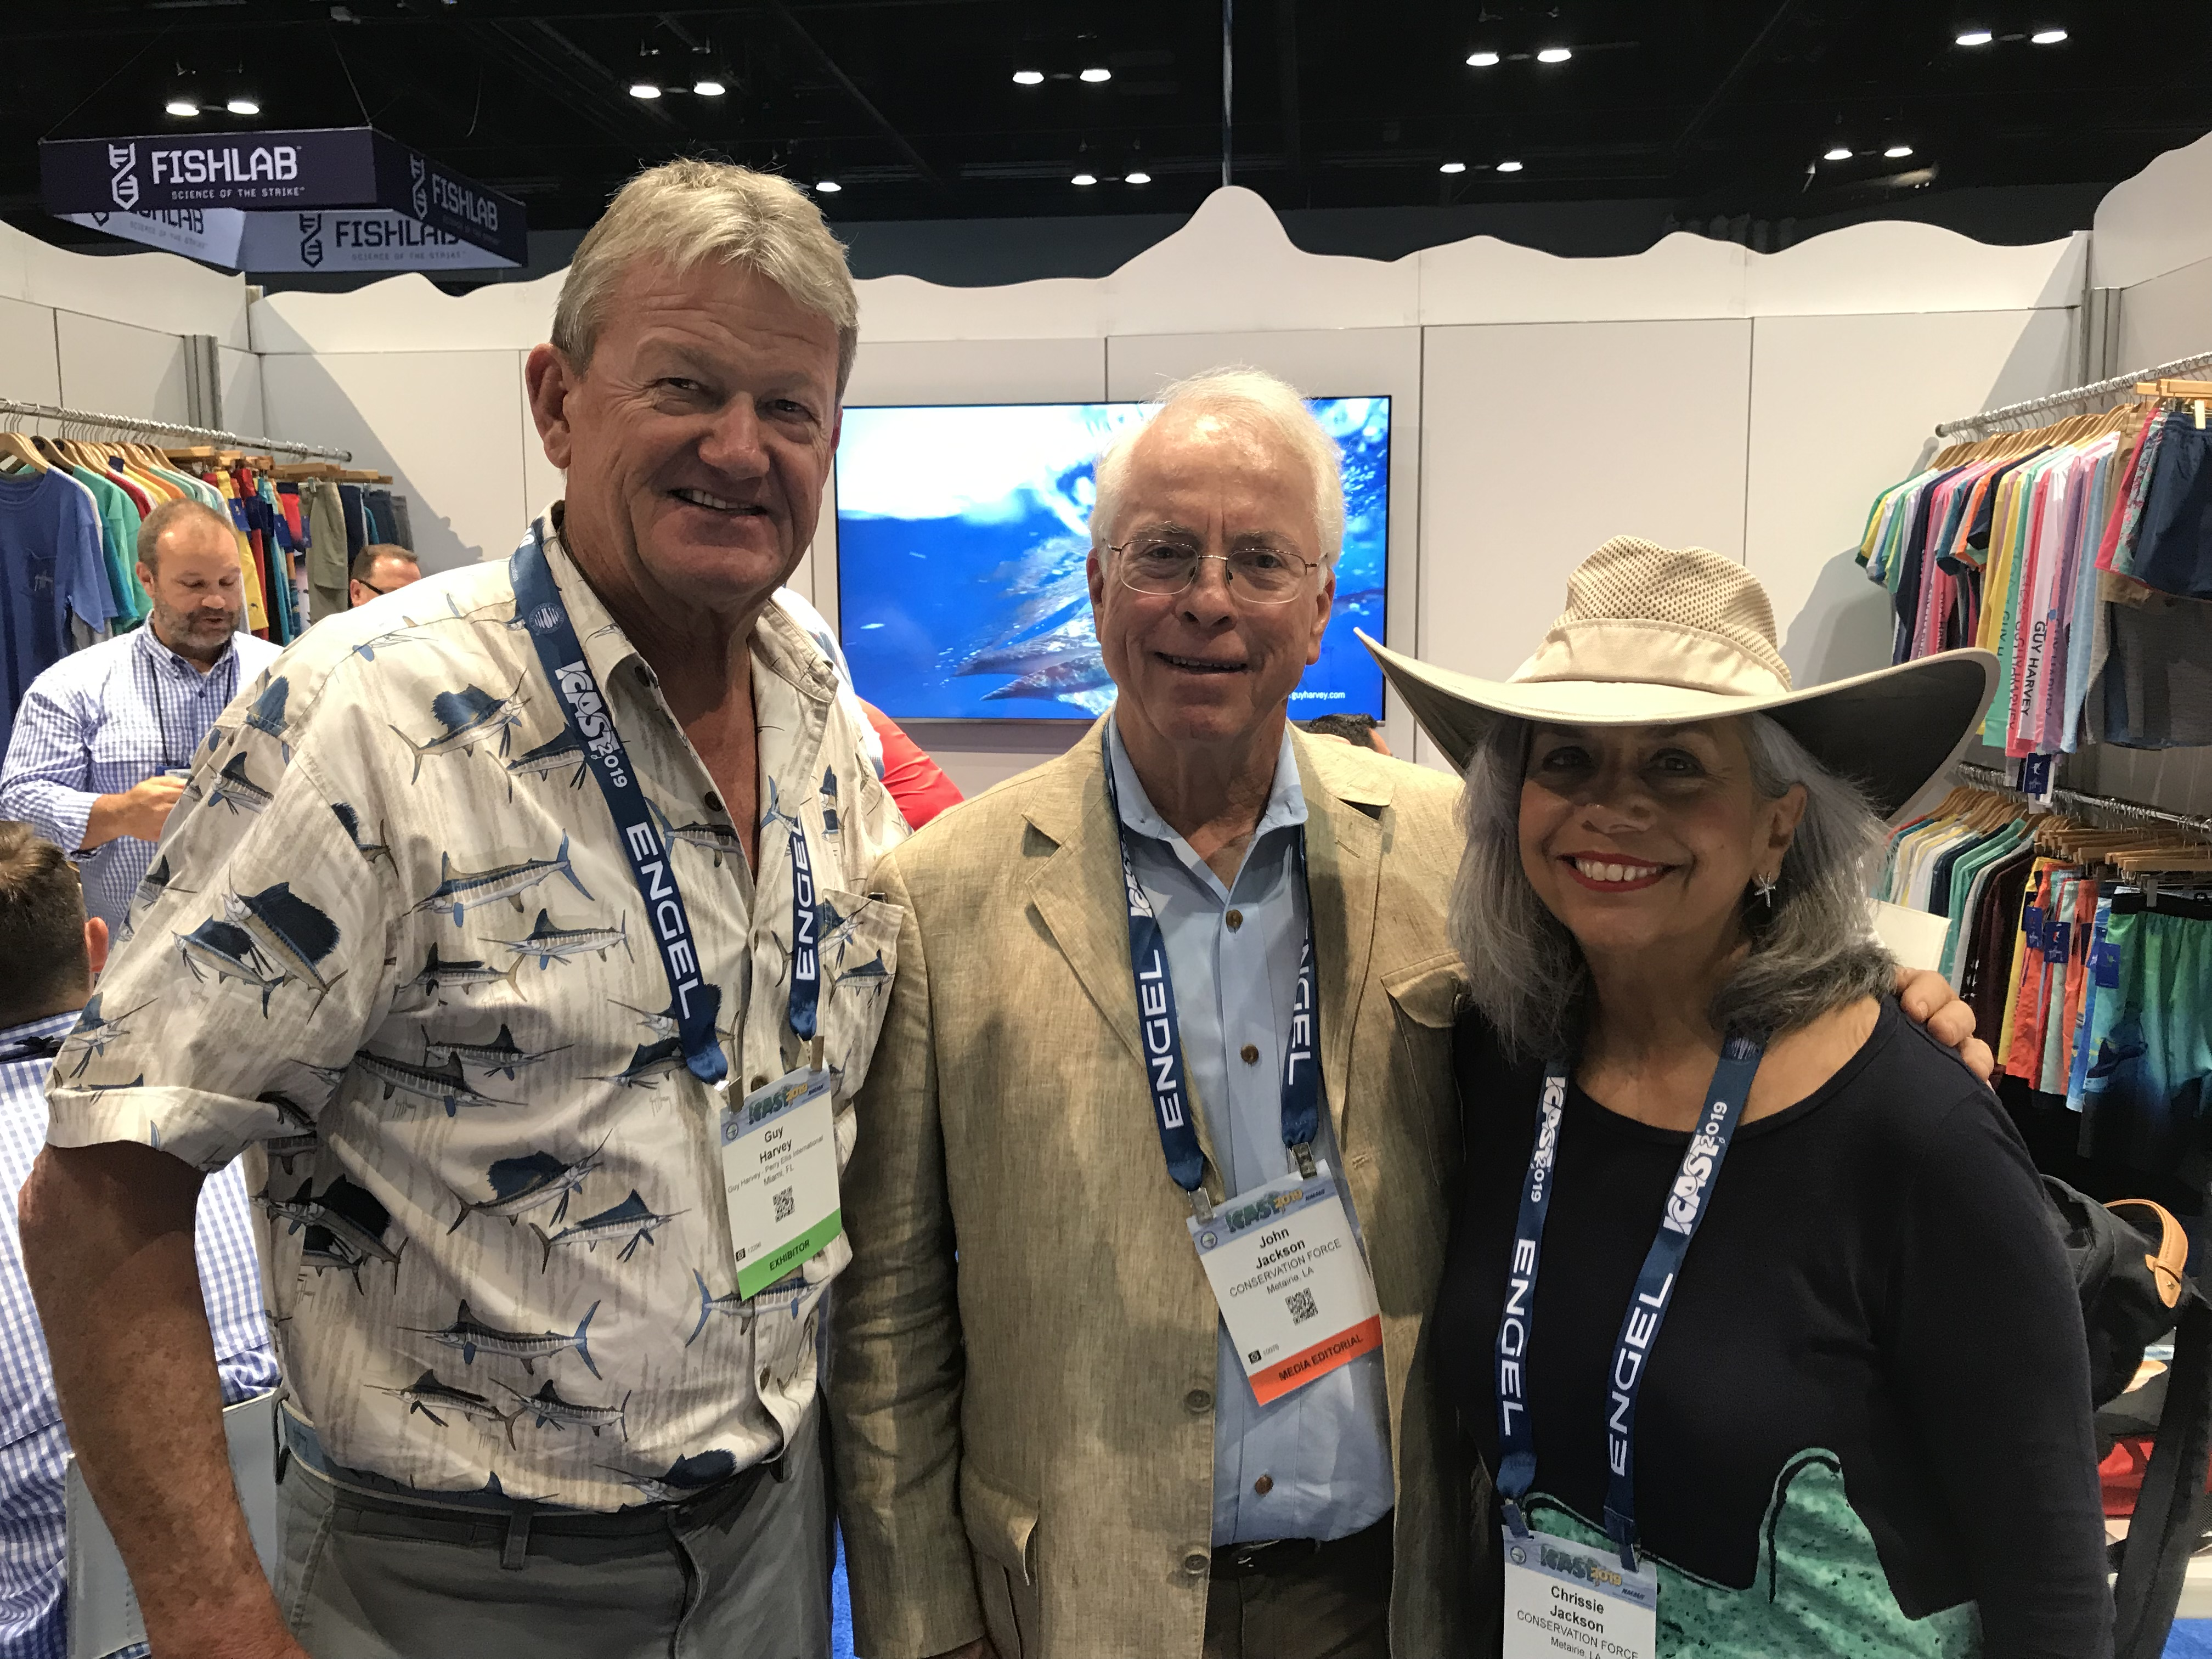 Guy Harvey with John and Chrissie Jackson discussing potential joint marine projects